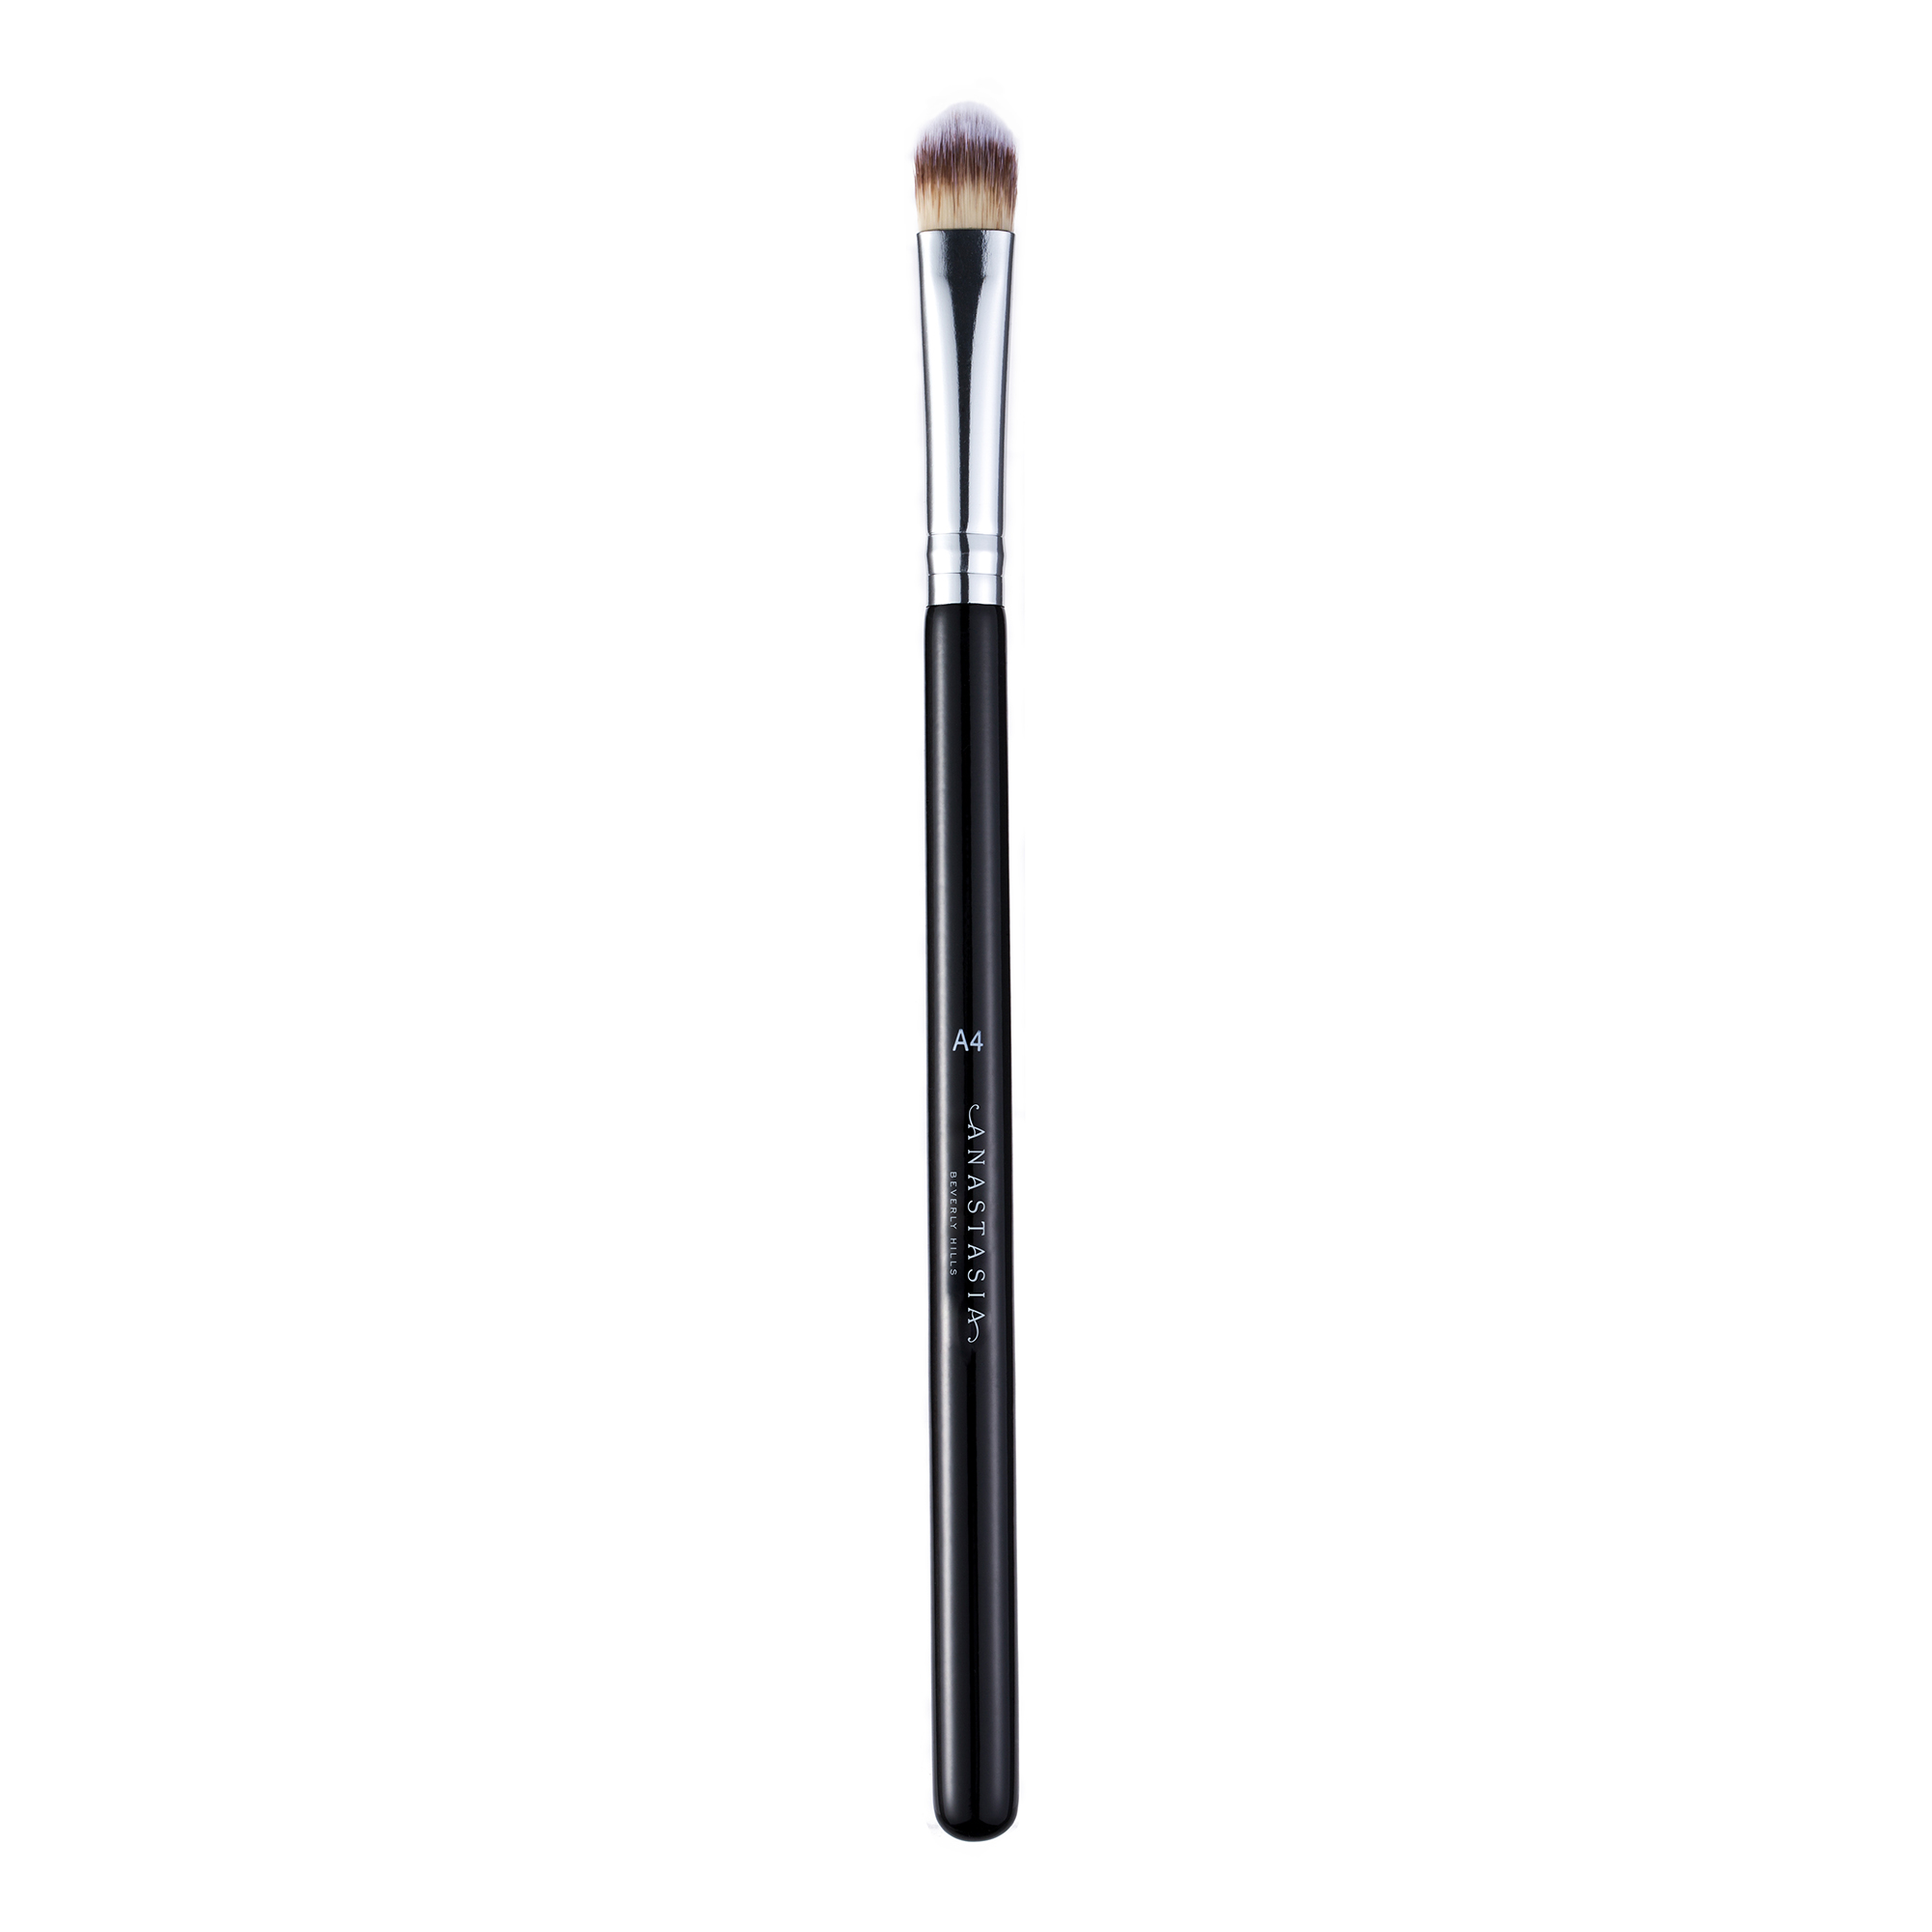 Pro Brush- A4 Cream Shadow Brush